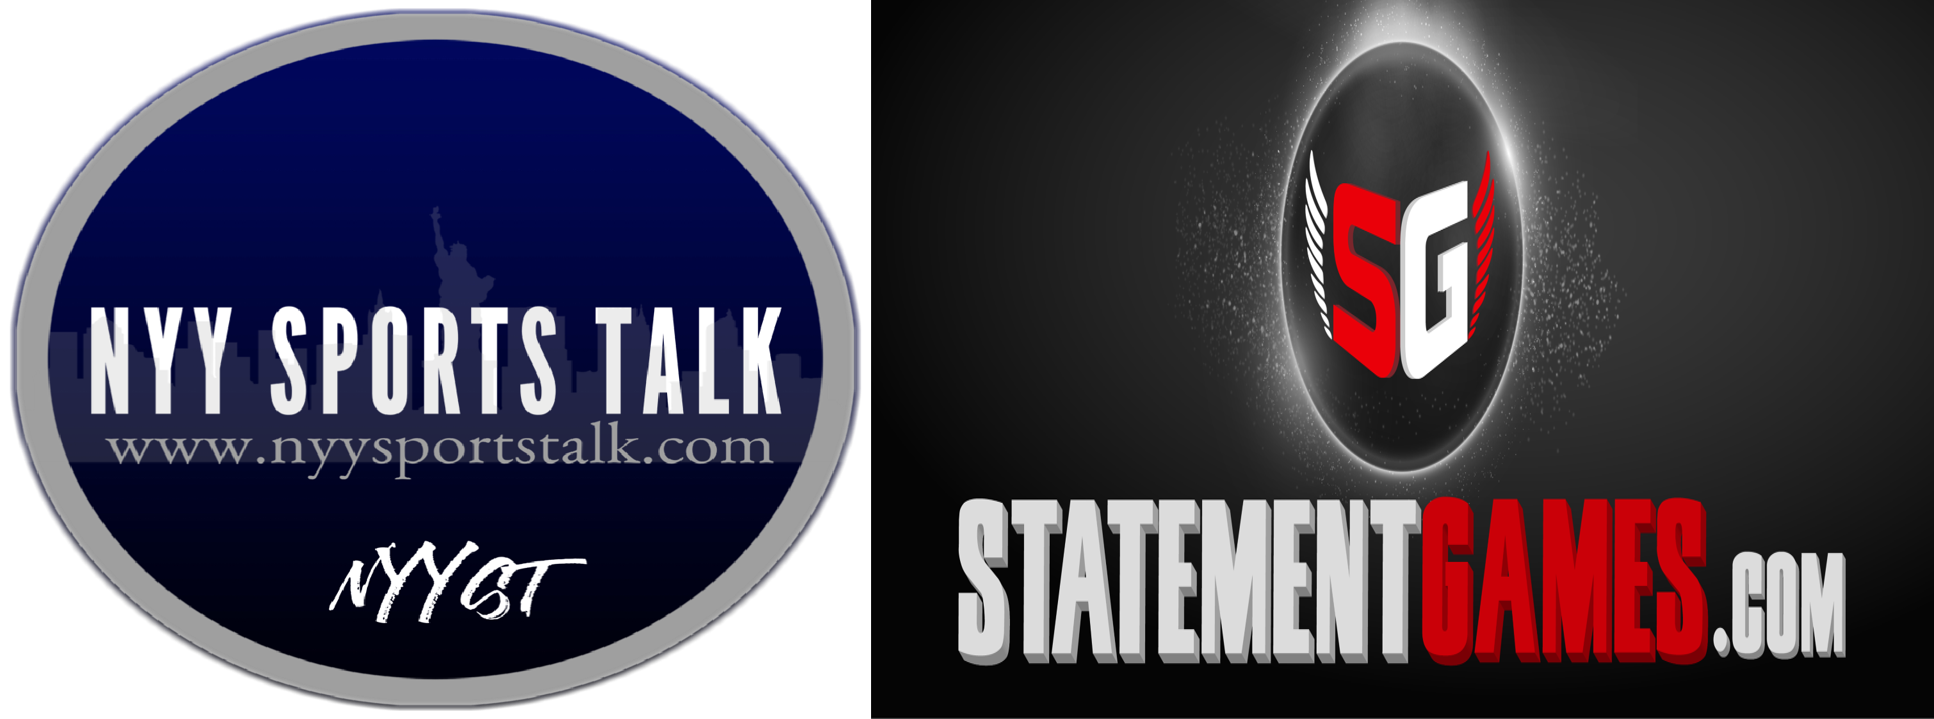 StatementGames Gaming Newsletter – Partnership With NYY Sports Talk